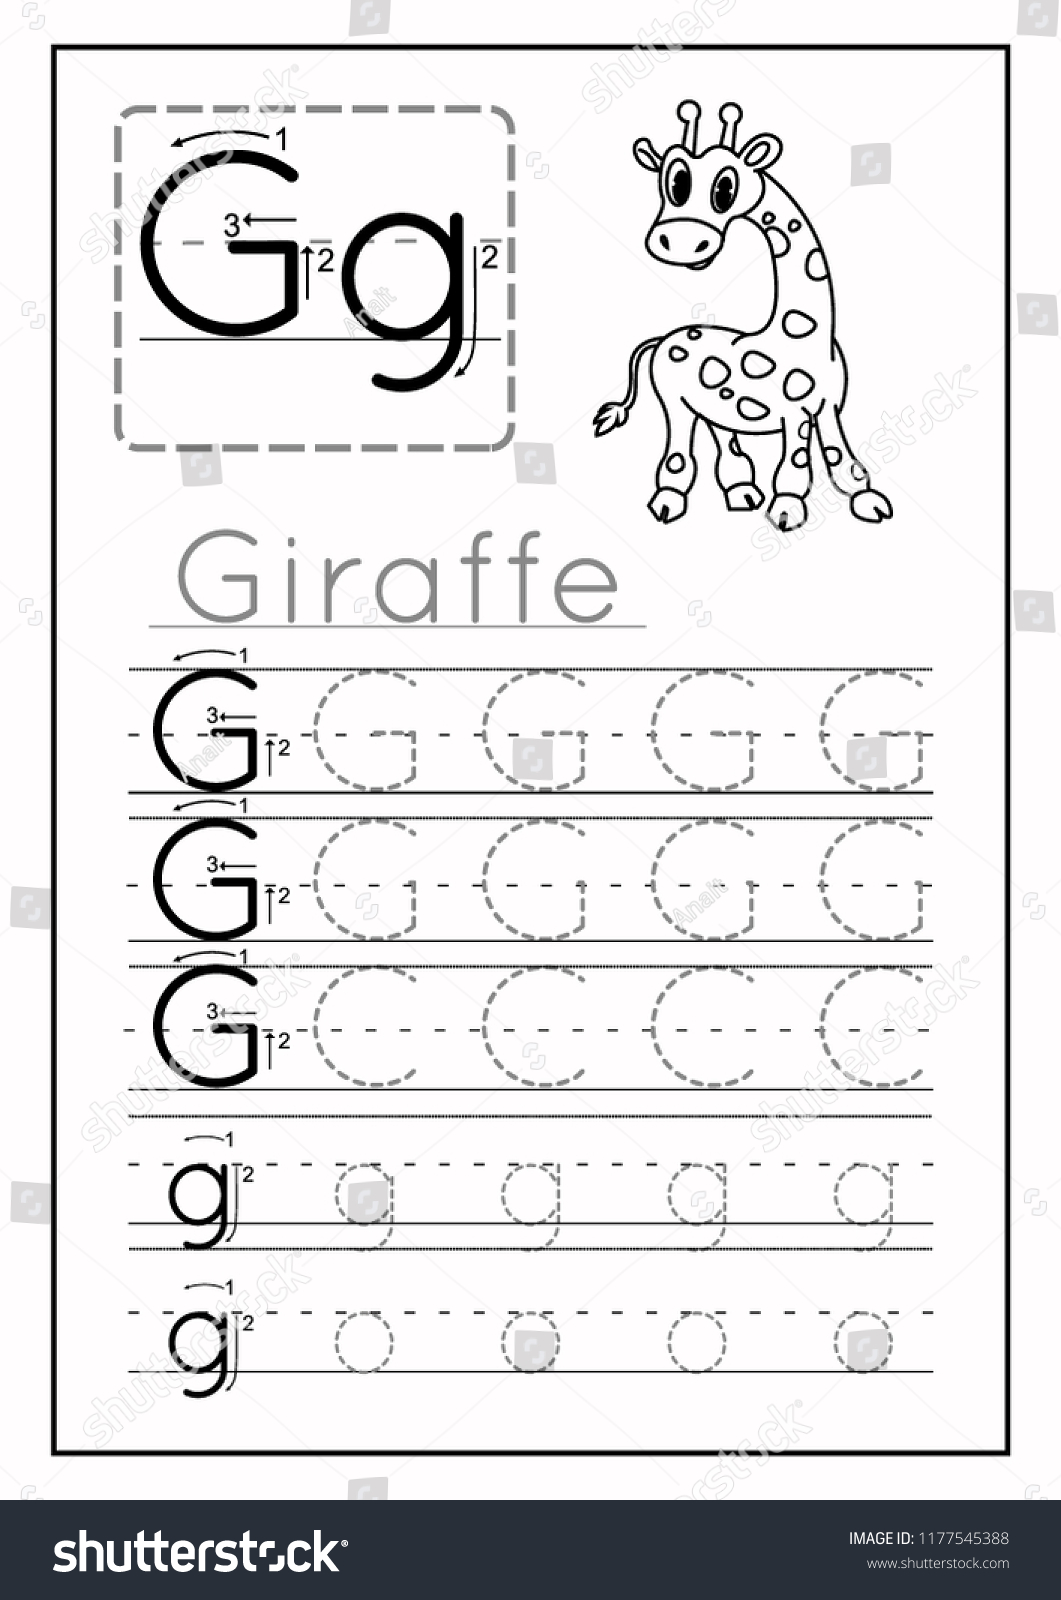 Writing Practice Letter G Printable Worksheet Stock Vector ...